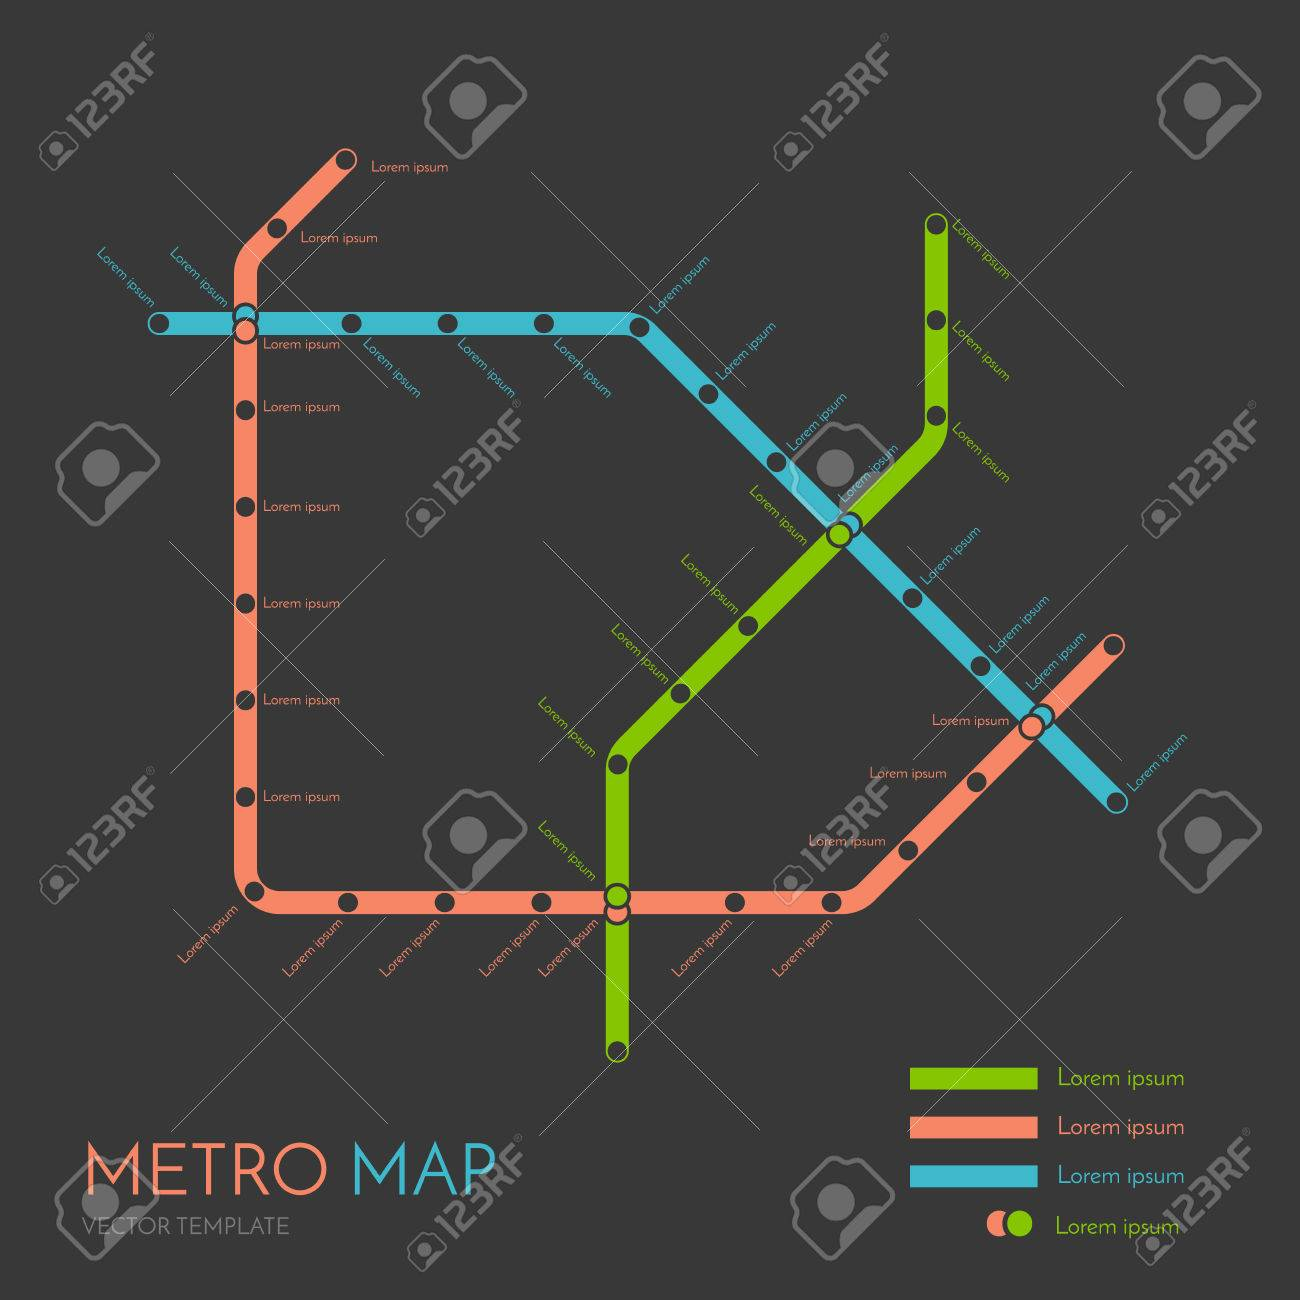 Subway Map Graphic Design.Metro Or Subway Map Design Template City Transportation Scheme